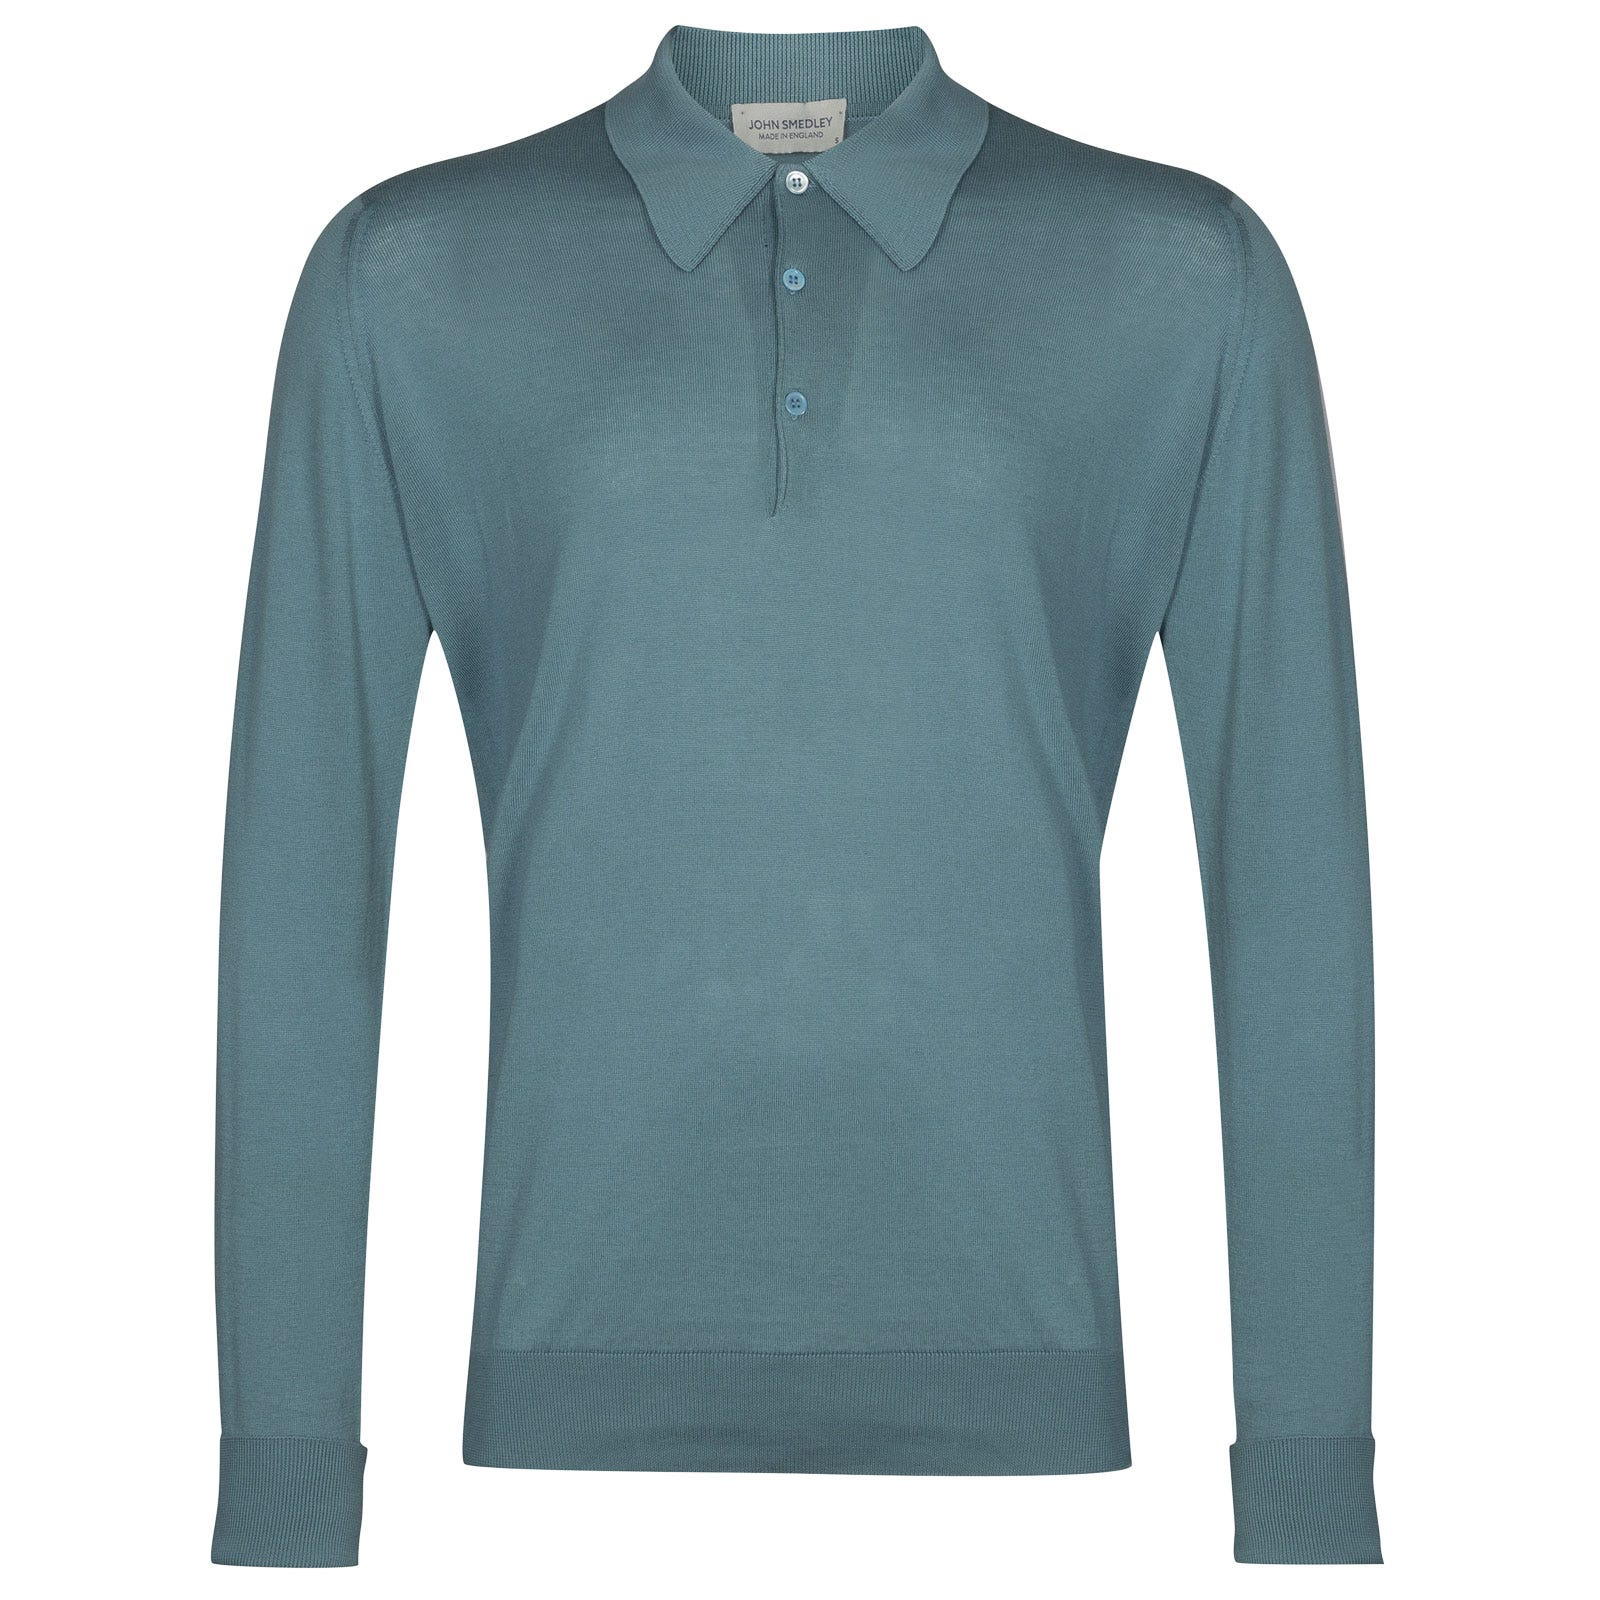 John Smedley finchley Sea Island Cotton Shirt in Summit Blue-XL